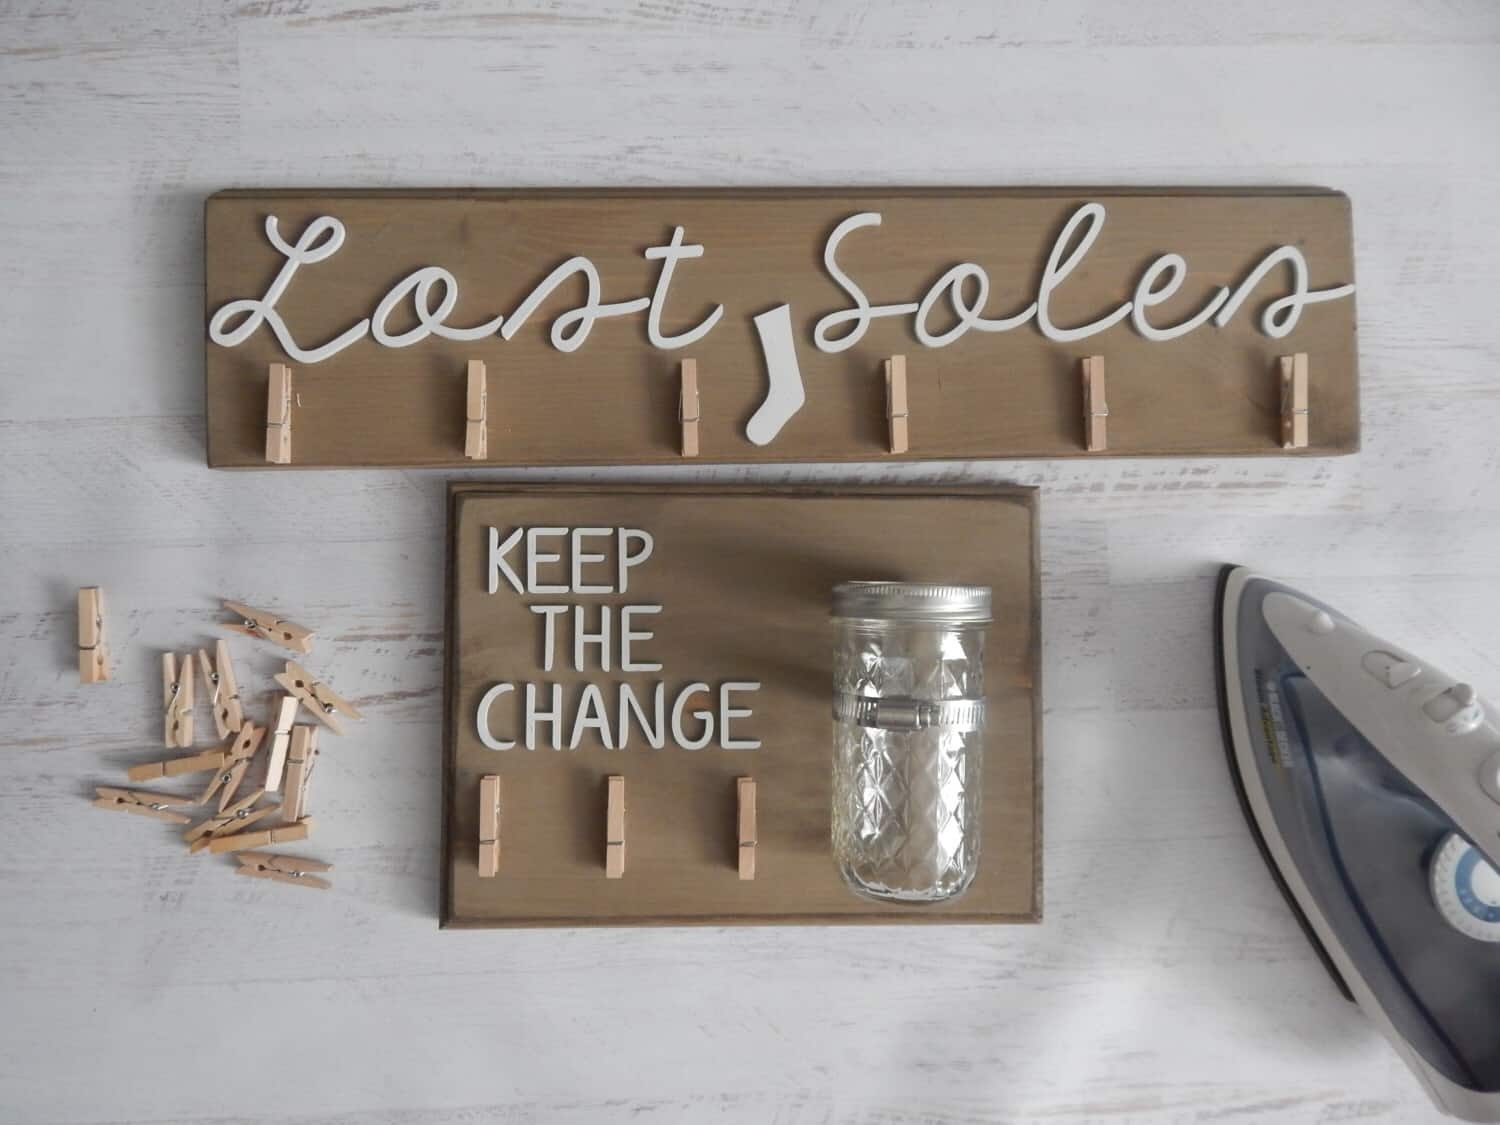 Lost coins and socks for laundry room